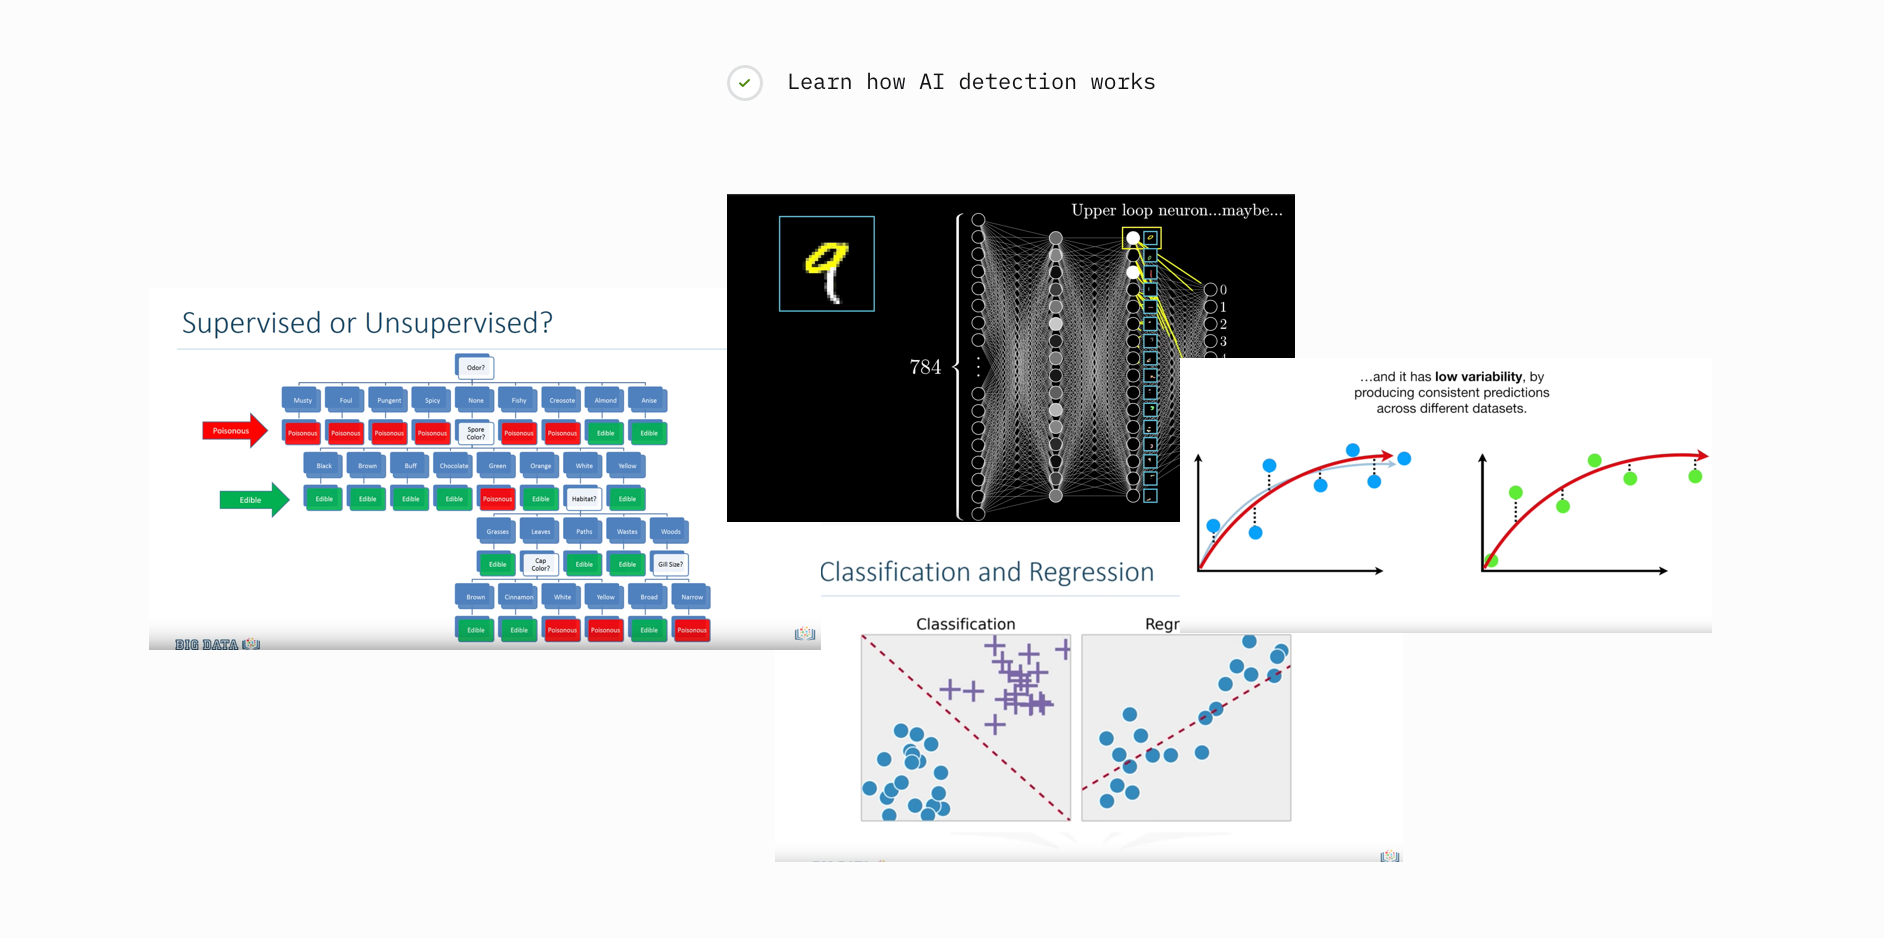 Learning about supervised/unsupervised machine learning, neural networks and classification.